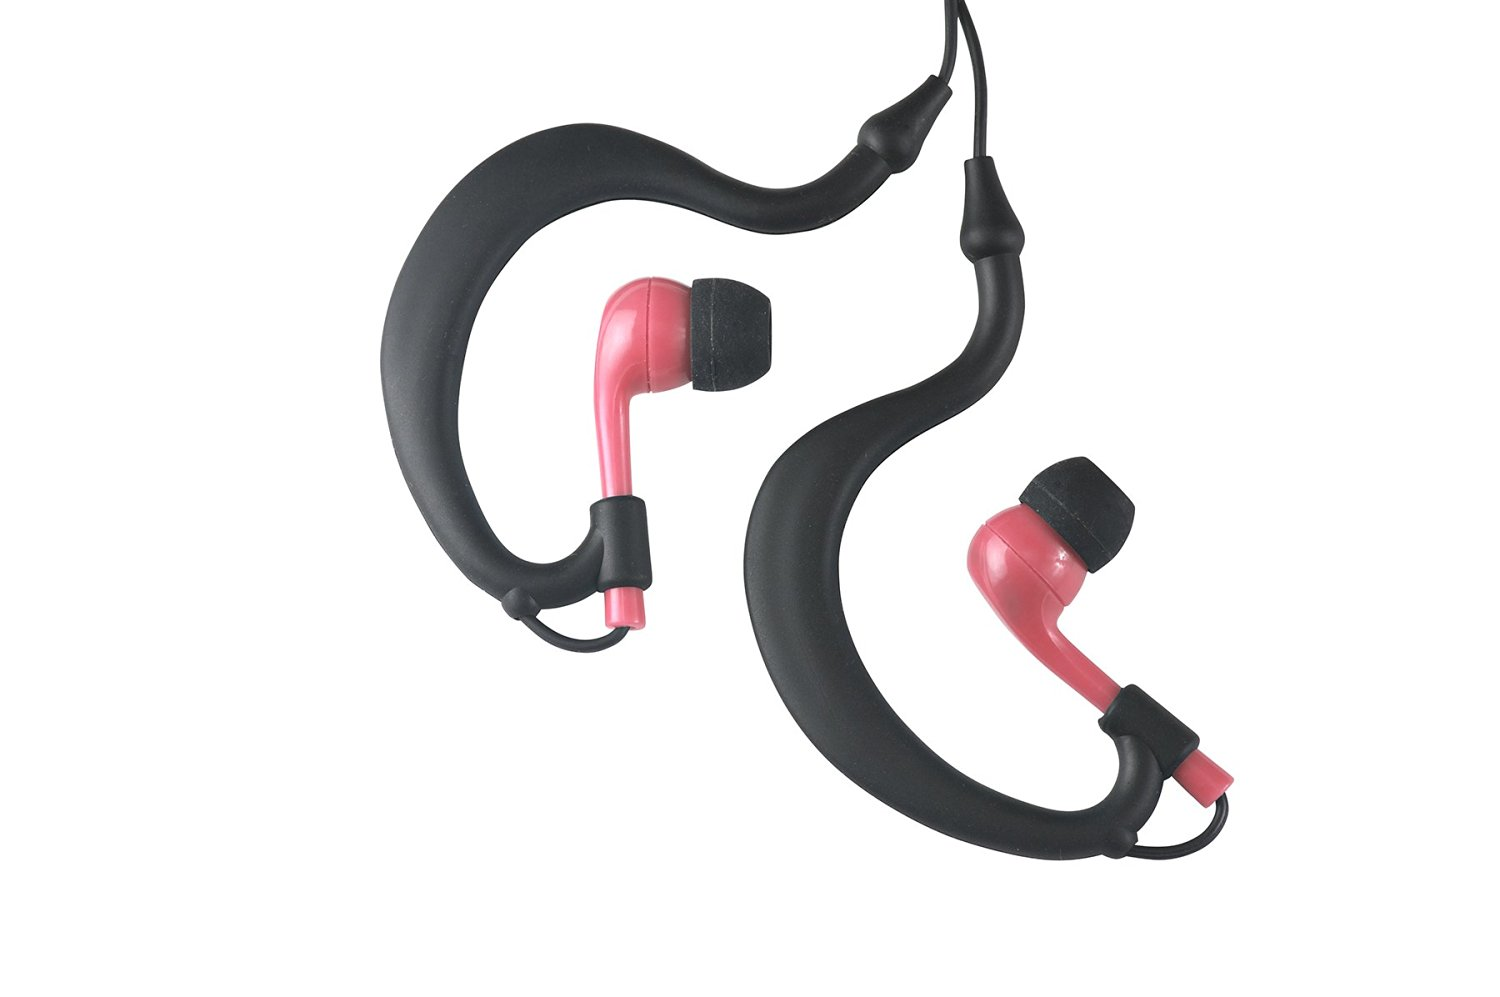 Uwater Triple-Axis 100% Waterproof Action Stereo Earphones-Black/Pink